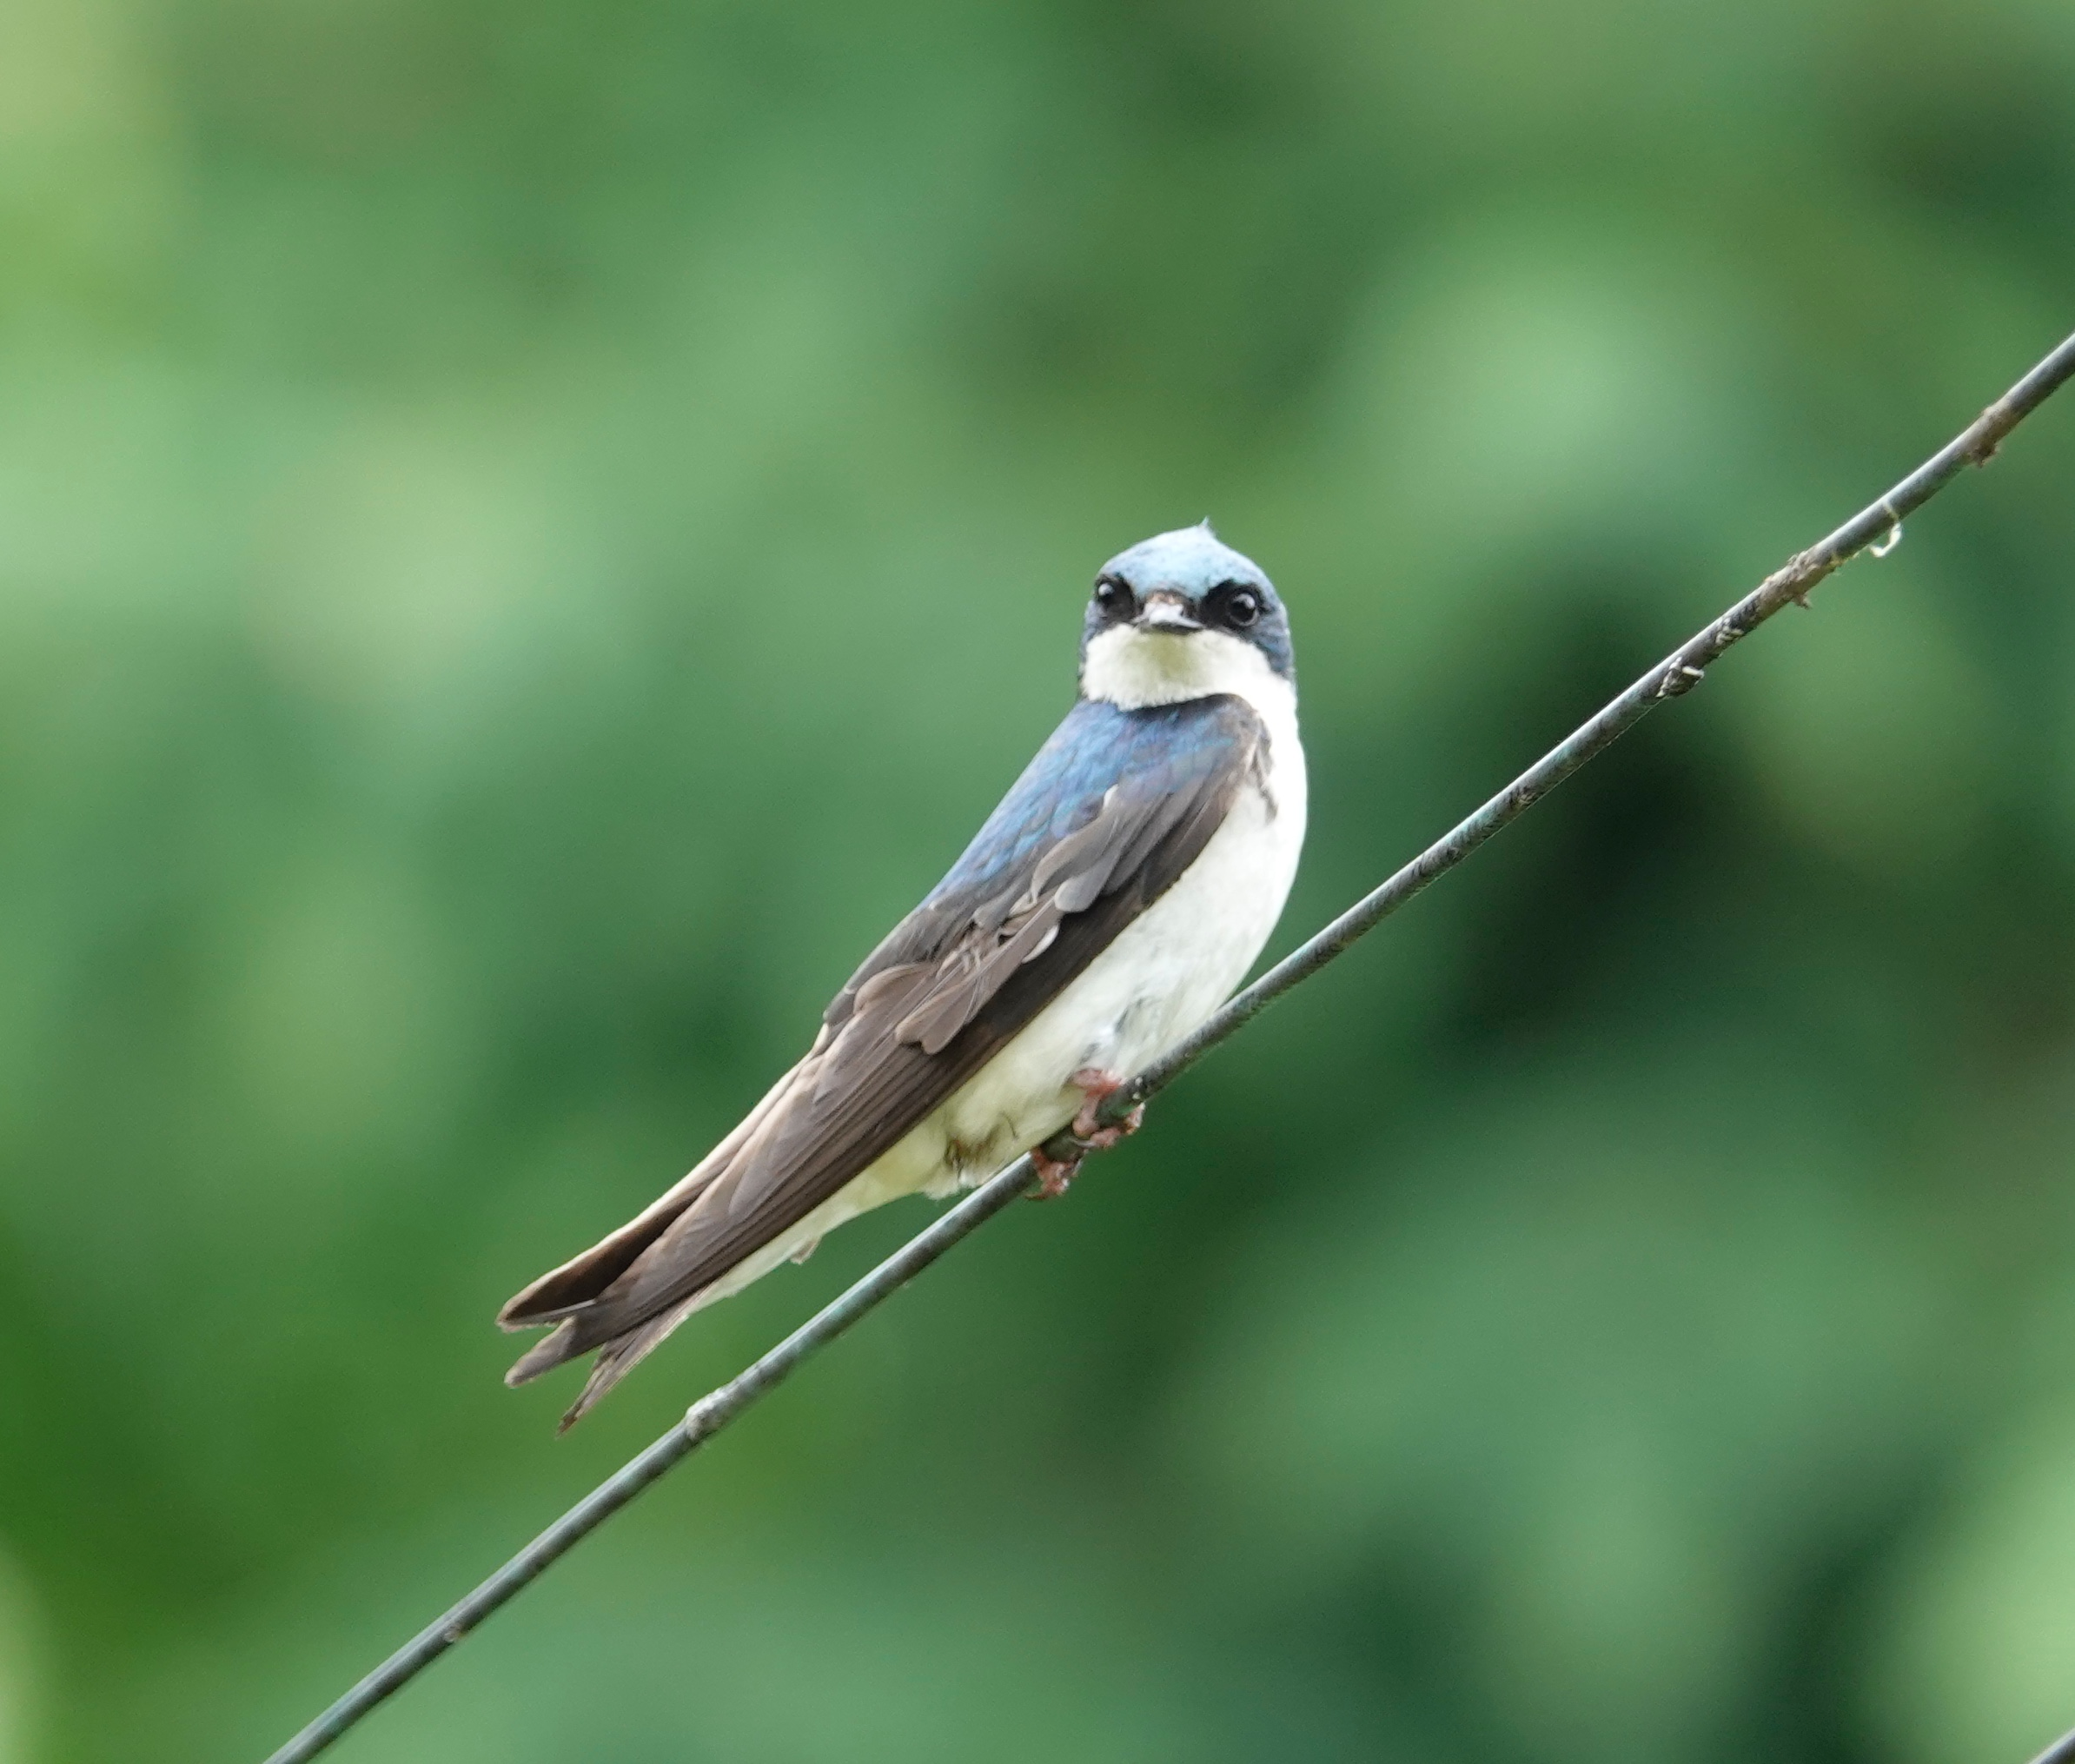 This might be the Ed Grimley of tree swallows.  Ed Grimley was a Martin Short character on SNL.